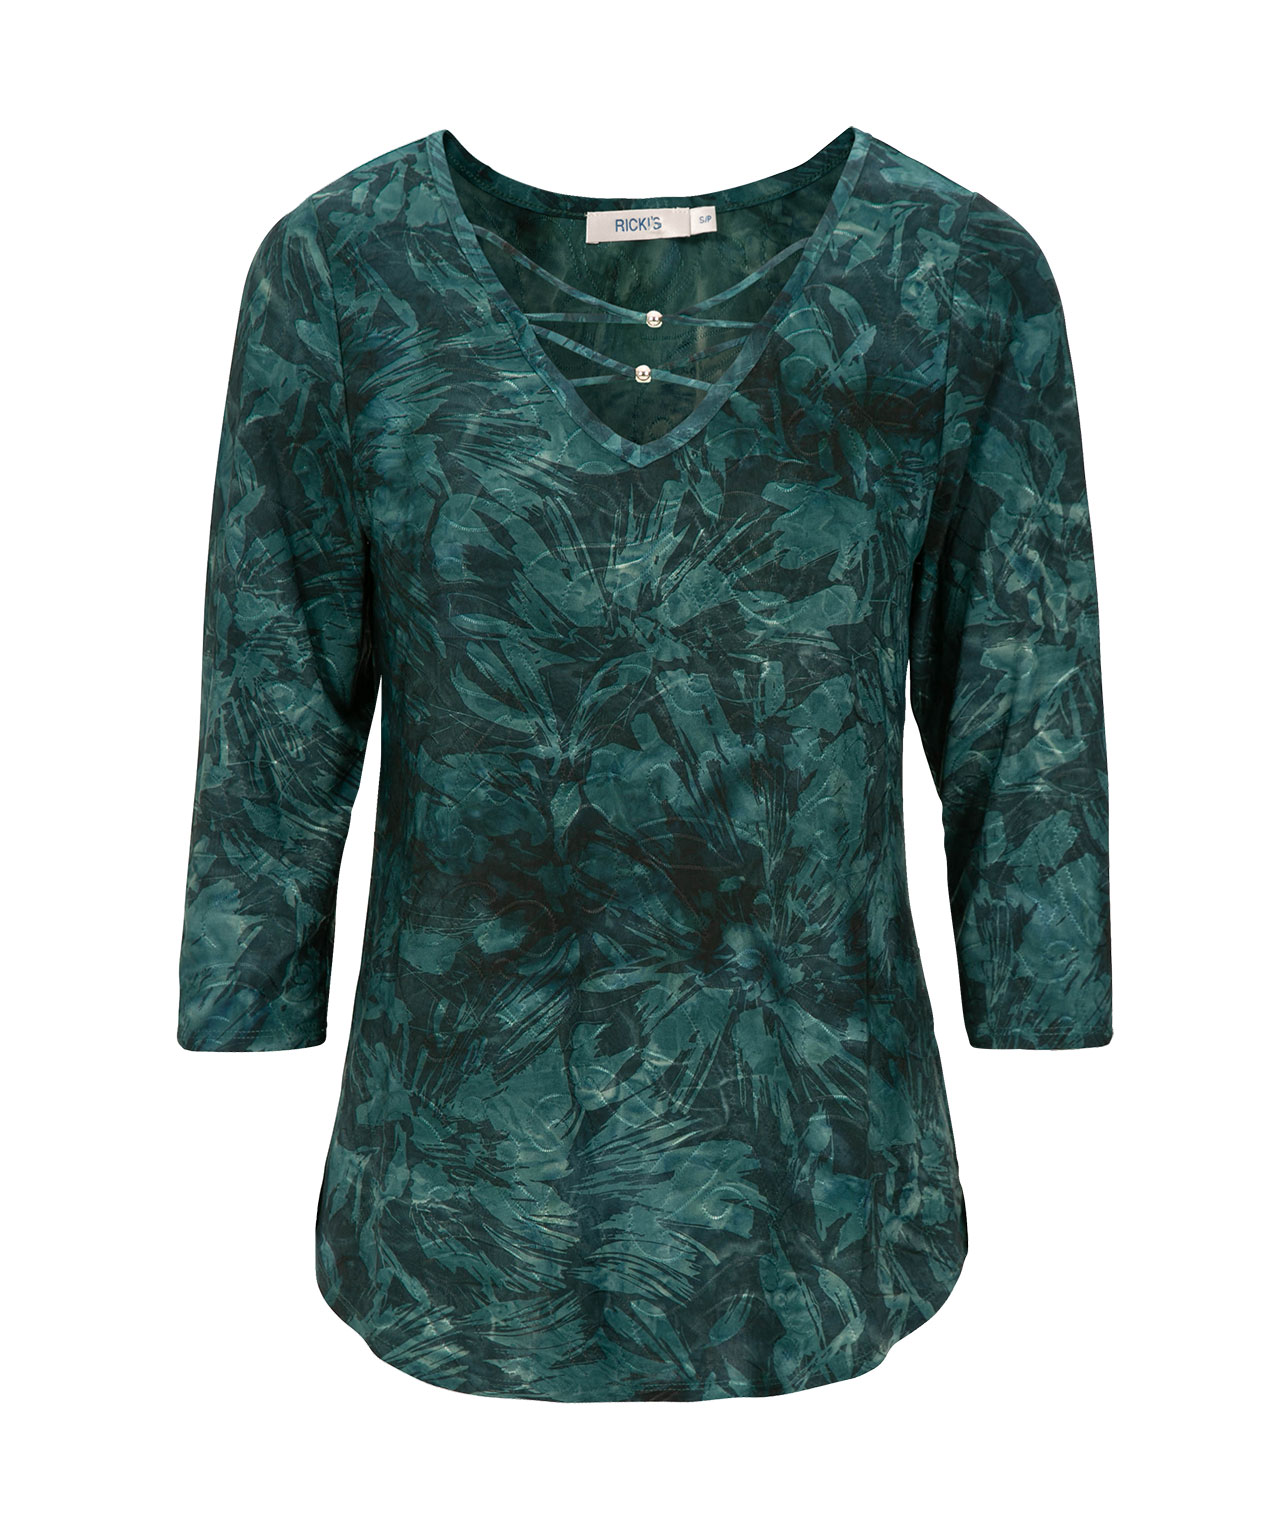 Criss-Cross Neck Textured Top, Jade, hi-res